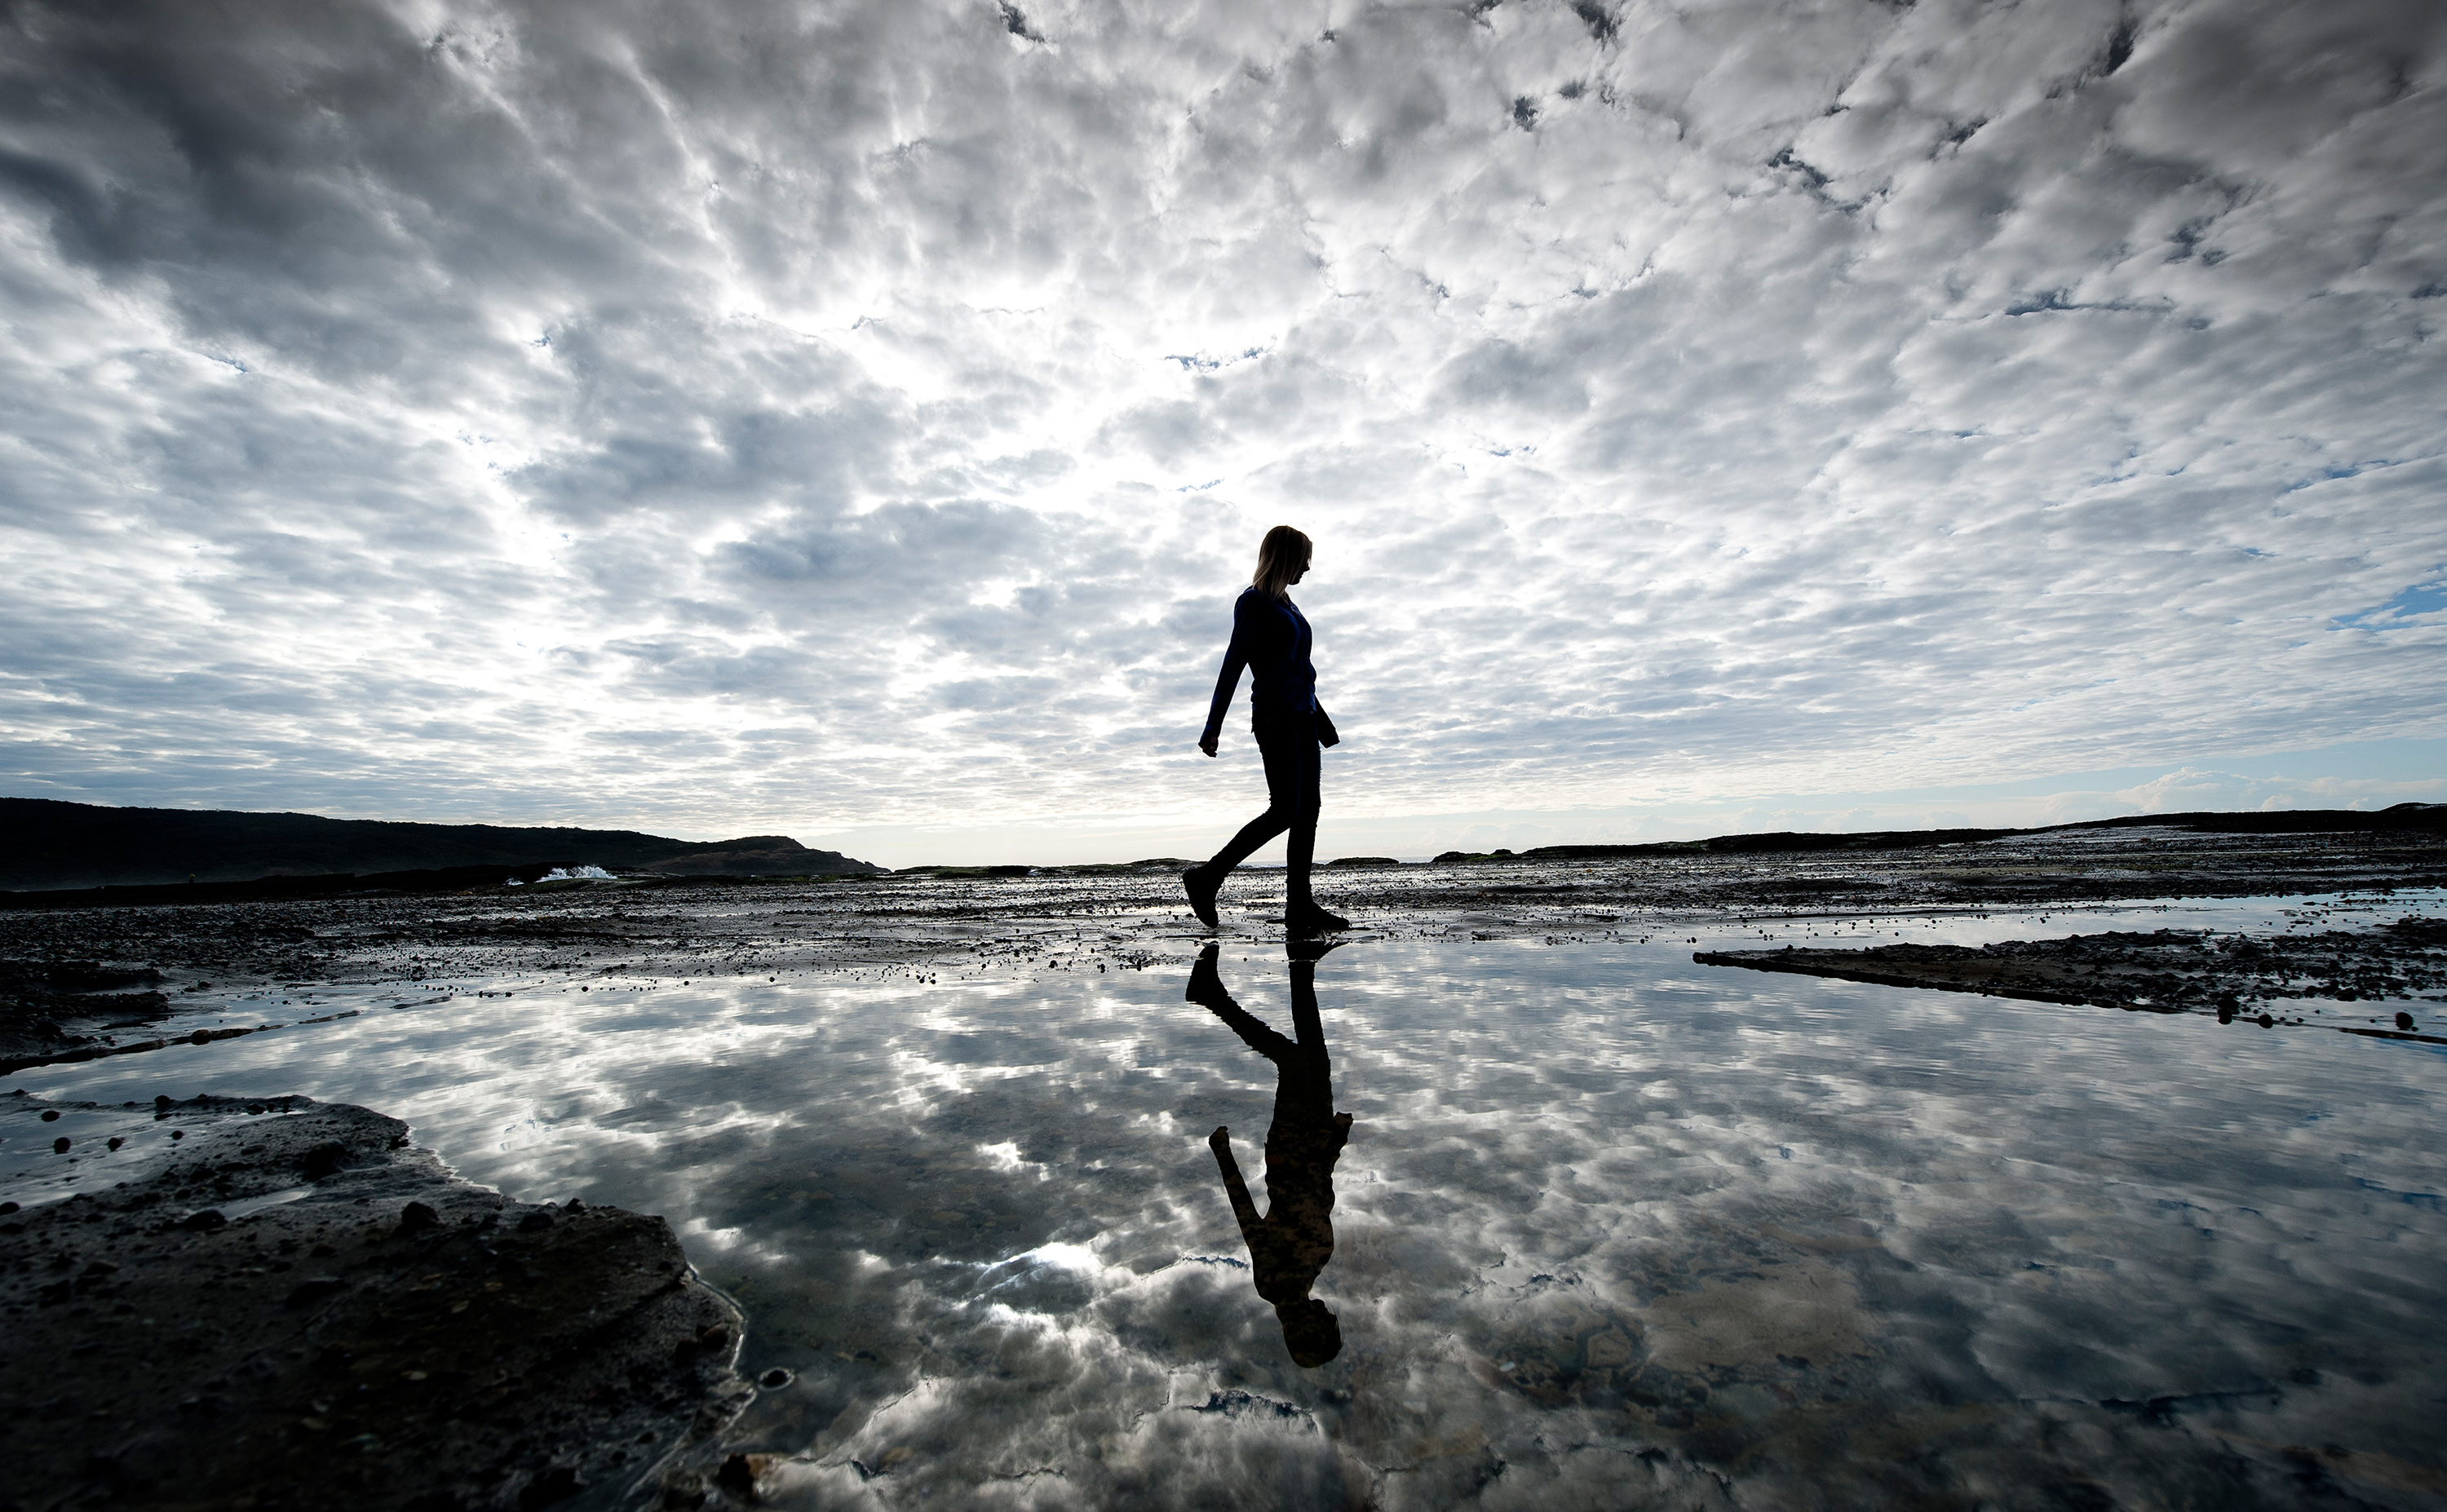 A person walks along a rock platform with sea and cloudy sky